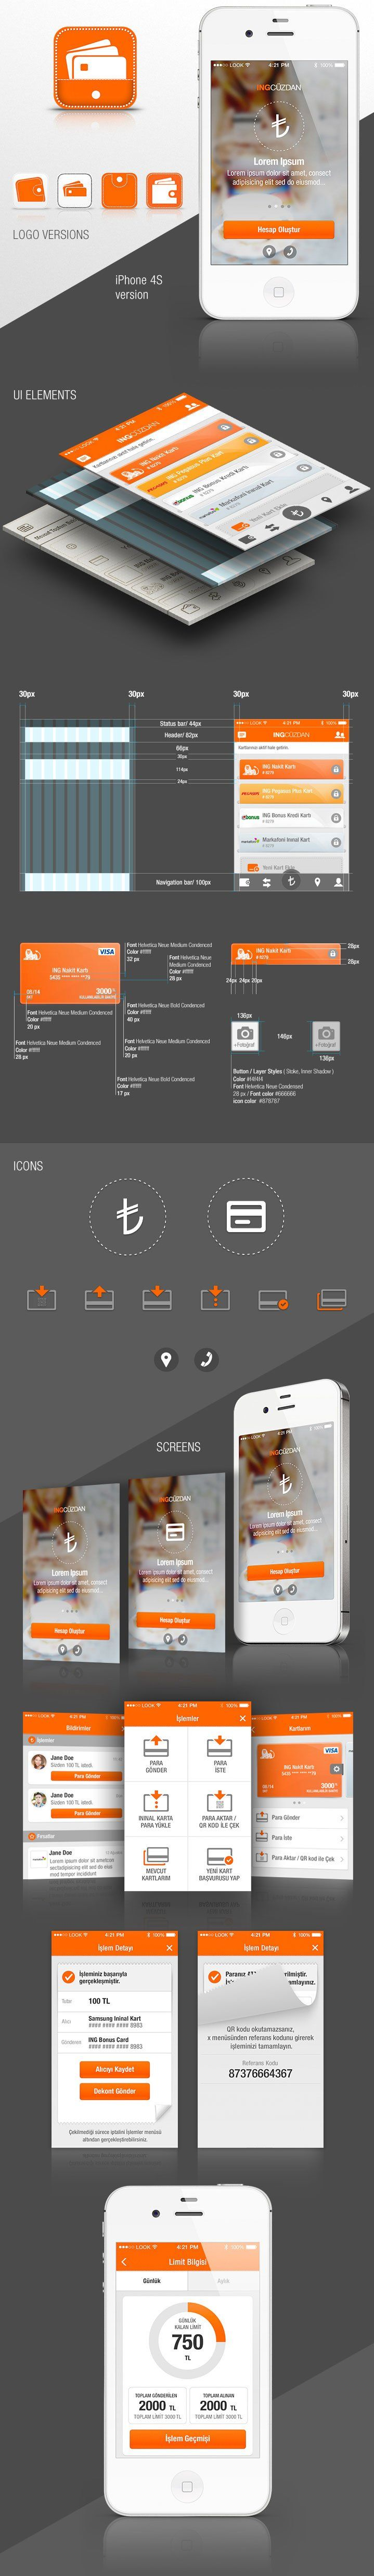 Daily Mobile UI Design Inspiration #295